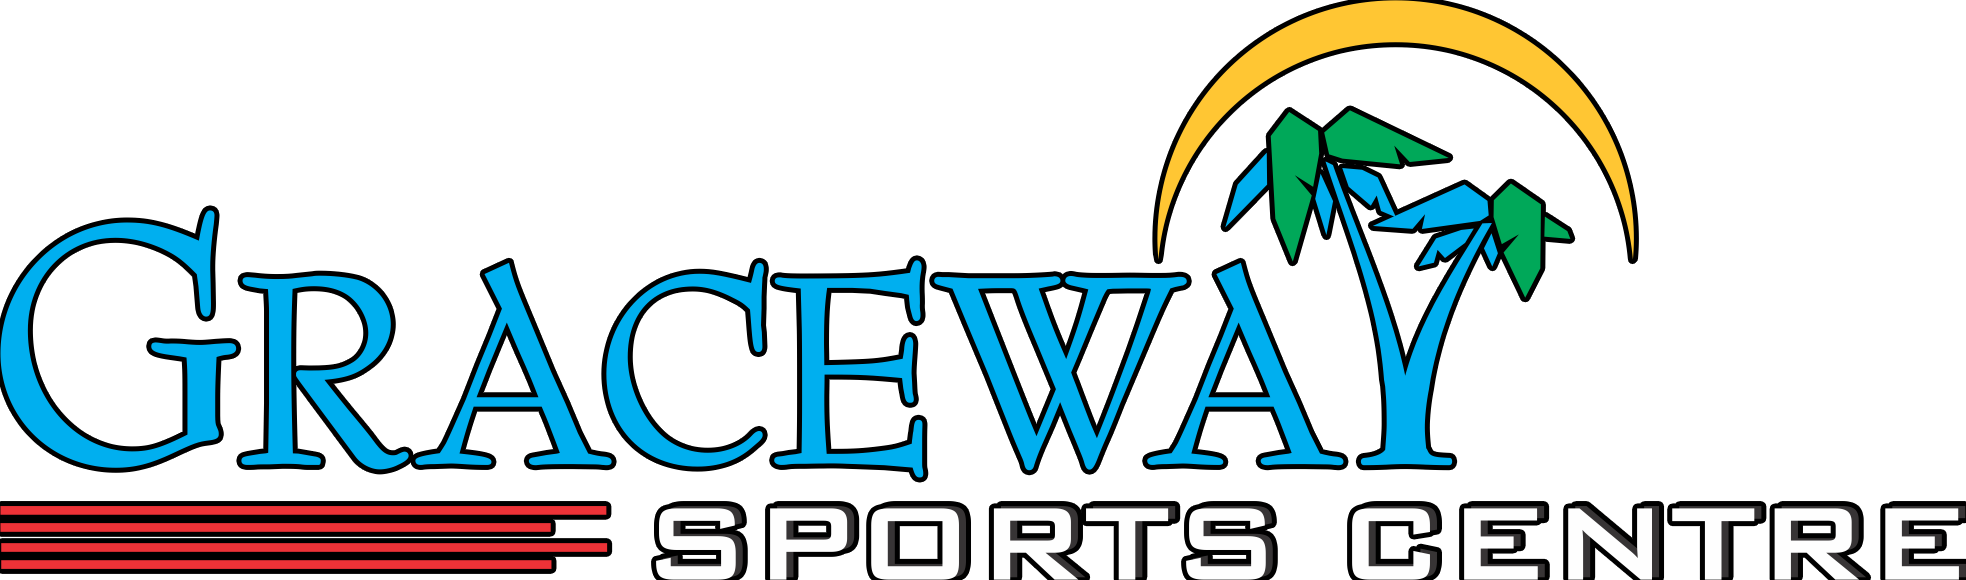 Memberships Terms and Conditions | Graceway Sports Center